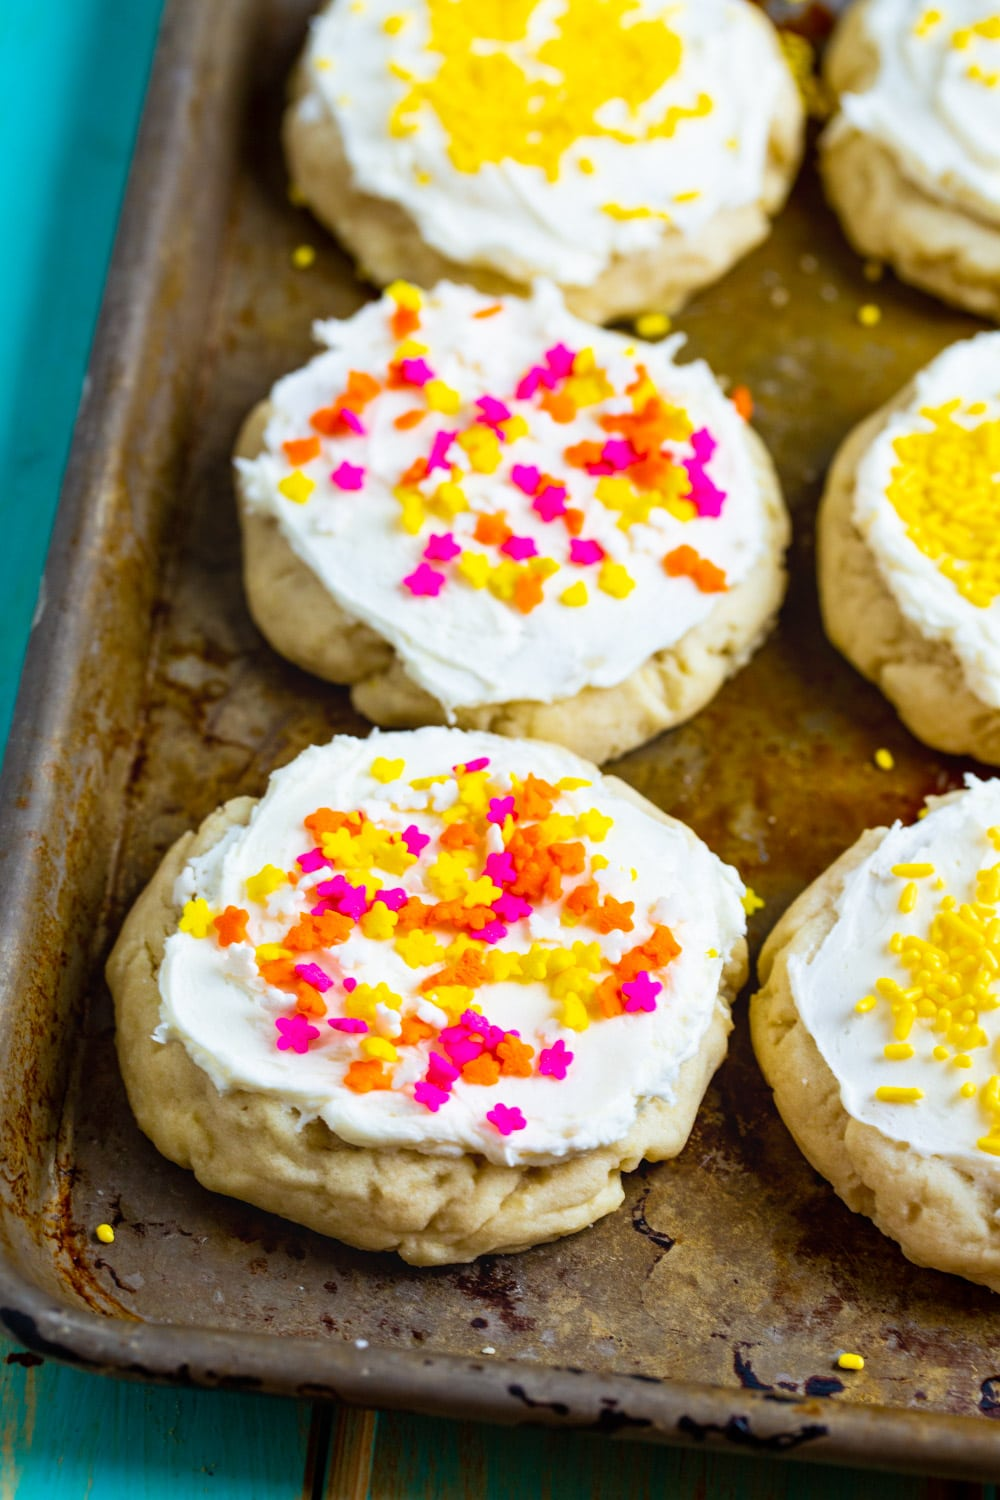 Lofthouse-Style Cookies on a baking sheet.